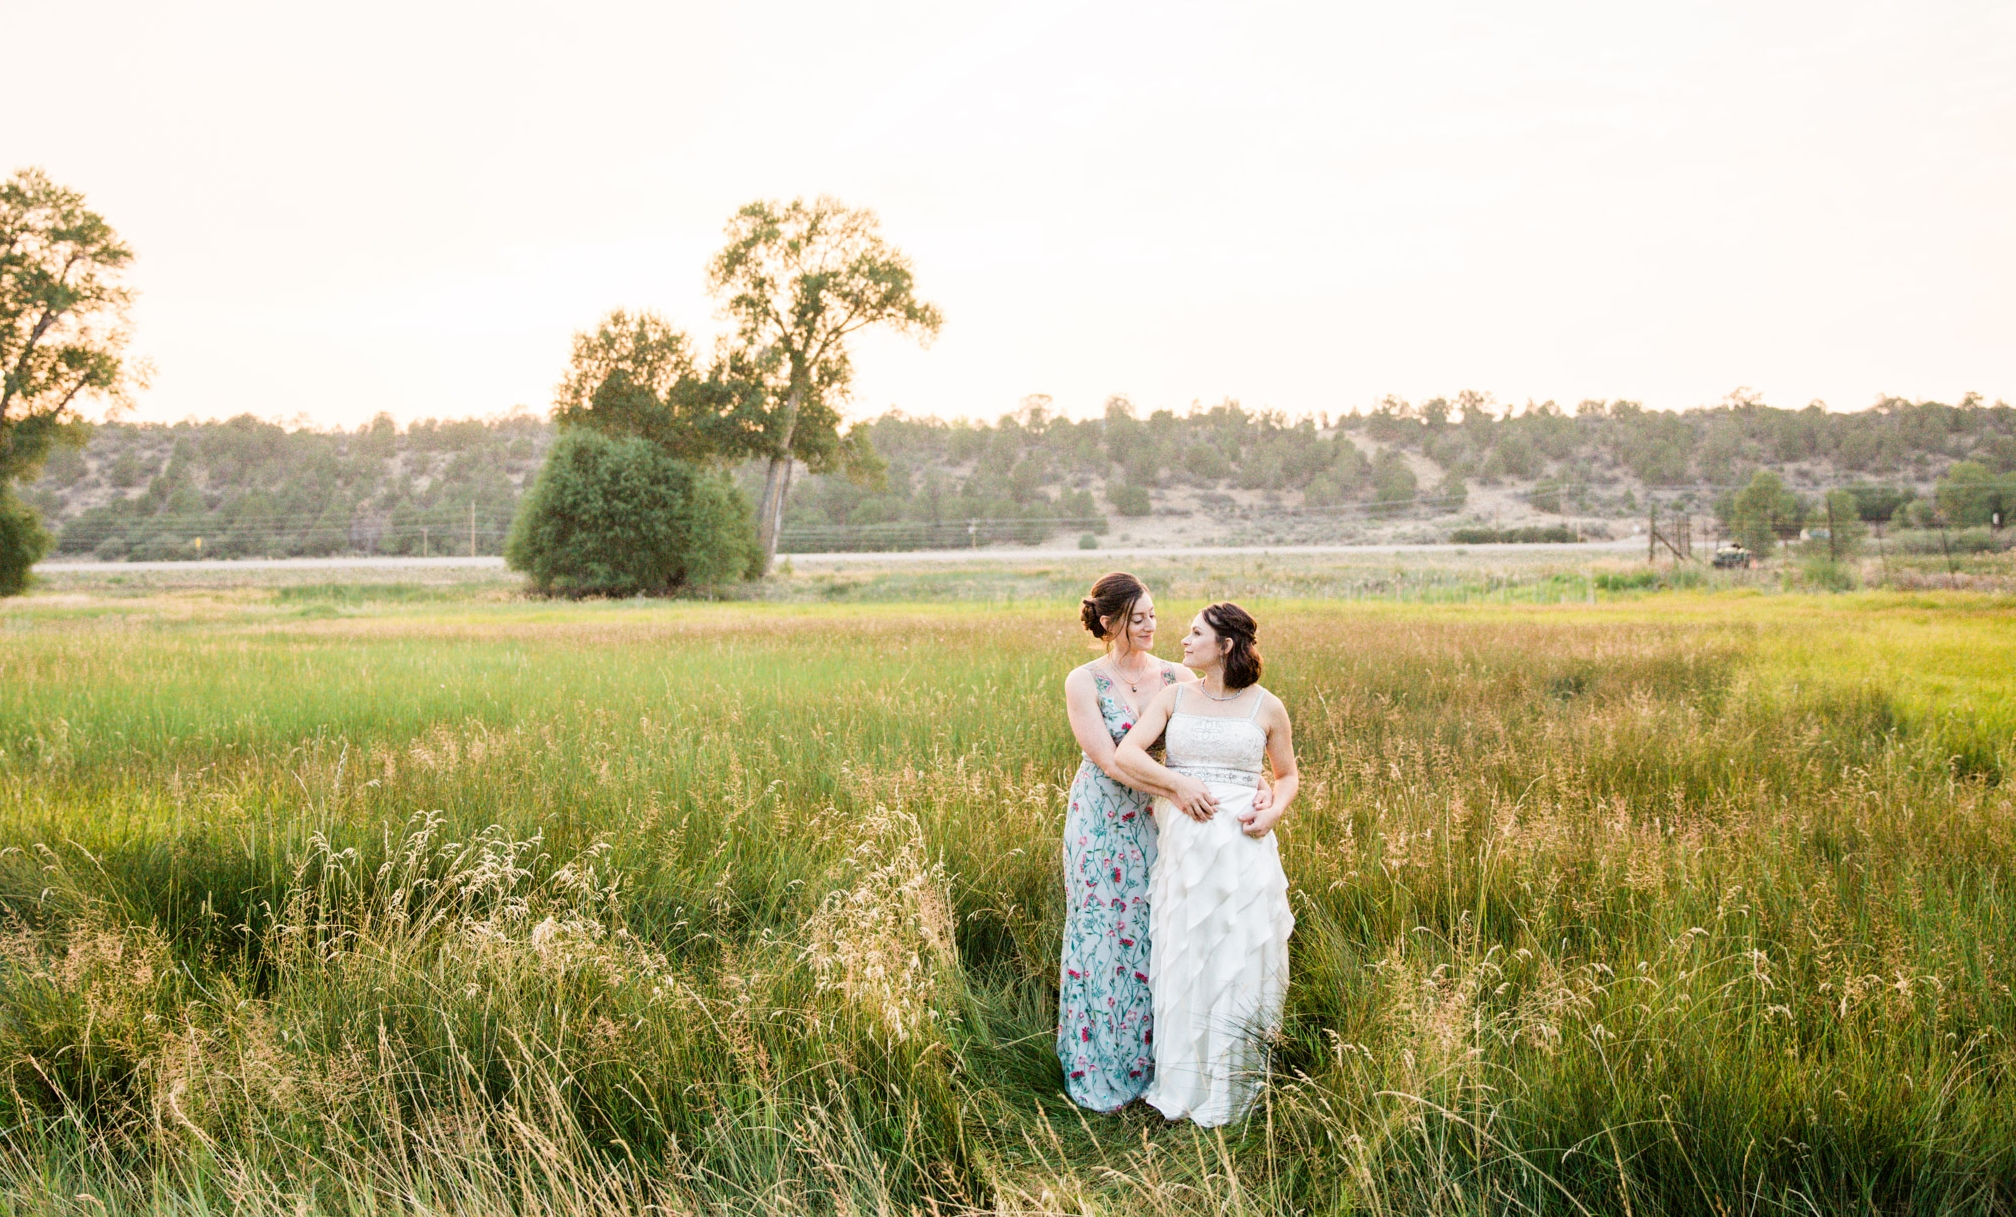 Southwest weddings tailored for you - Wedding photography collections customized to suit your needs.Santa Fe local? Ask about my locals discount!